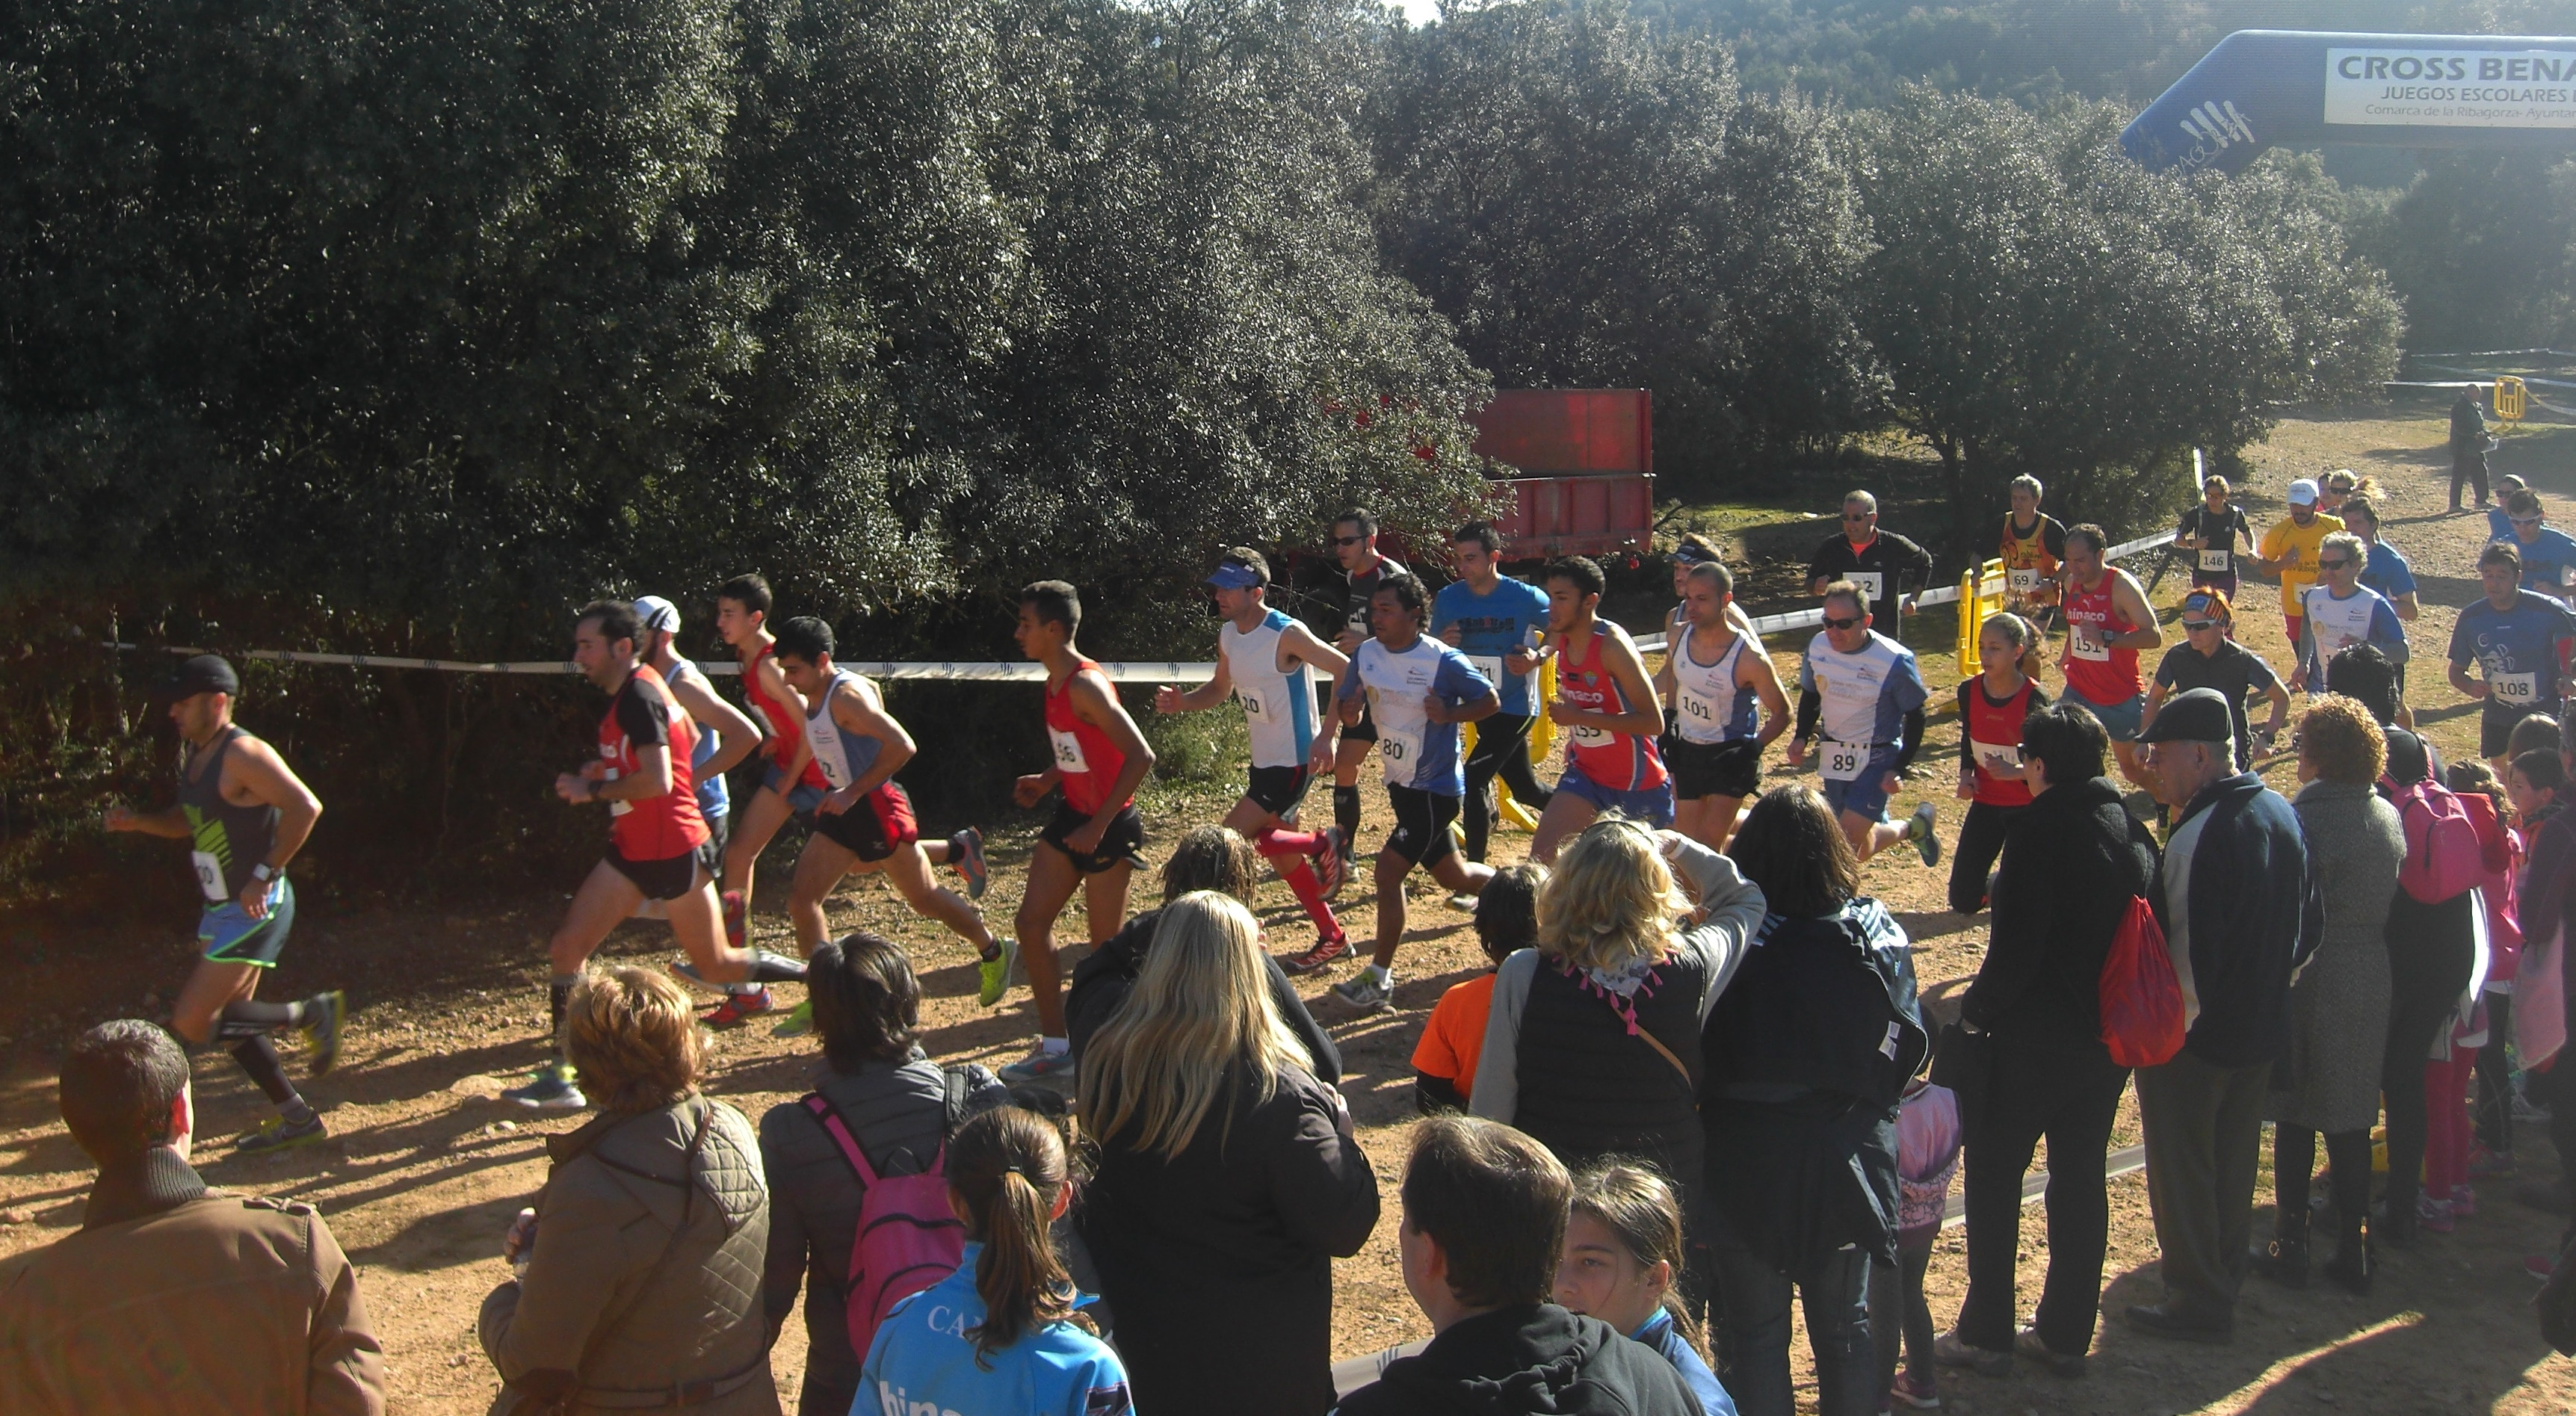 XVII CROSS DE BENABARRE